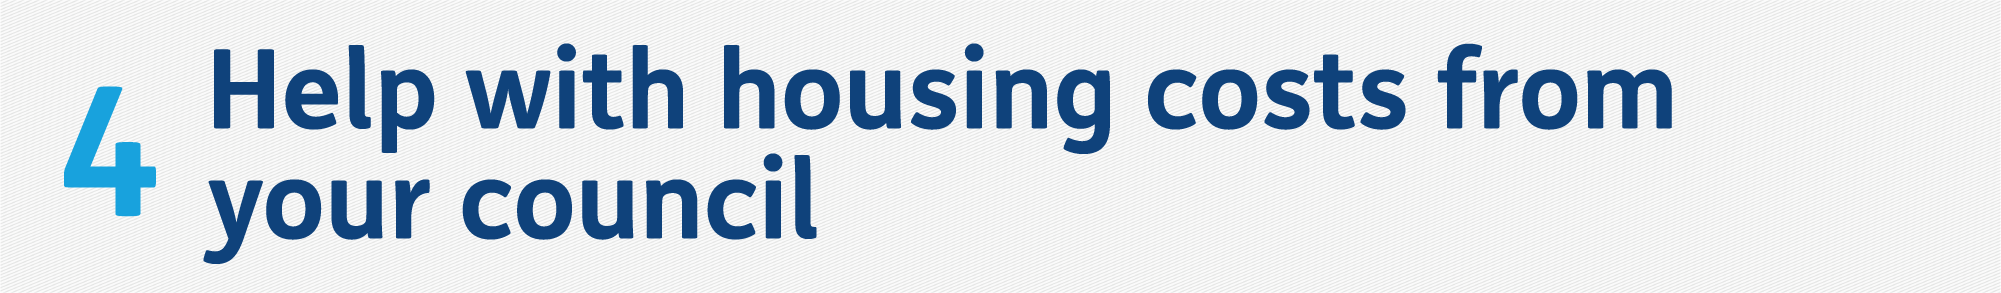 4. Help with housing costs from your council